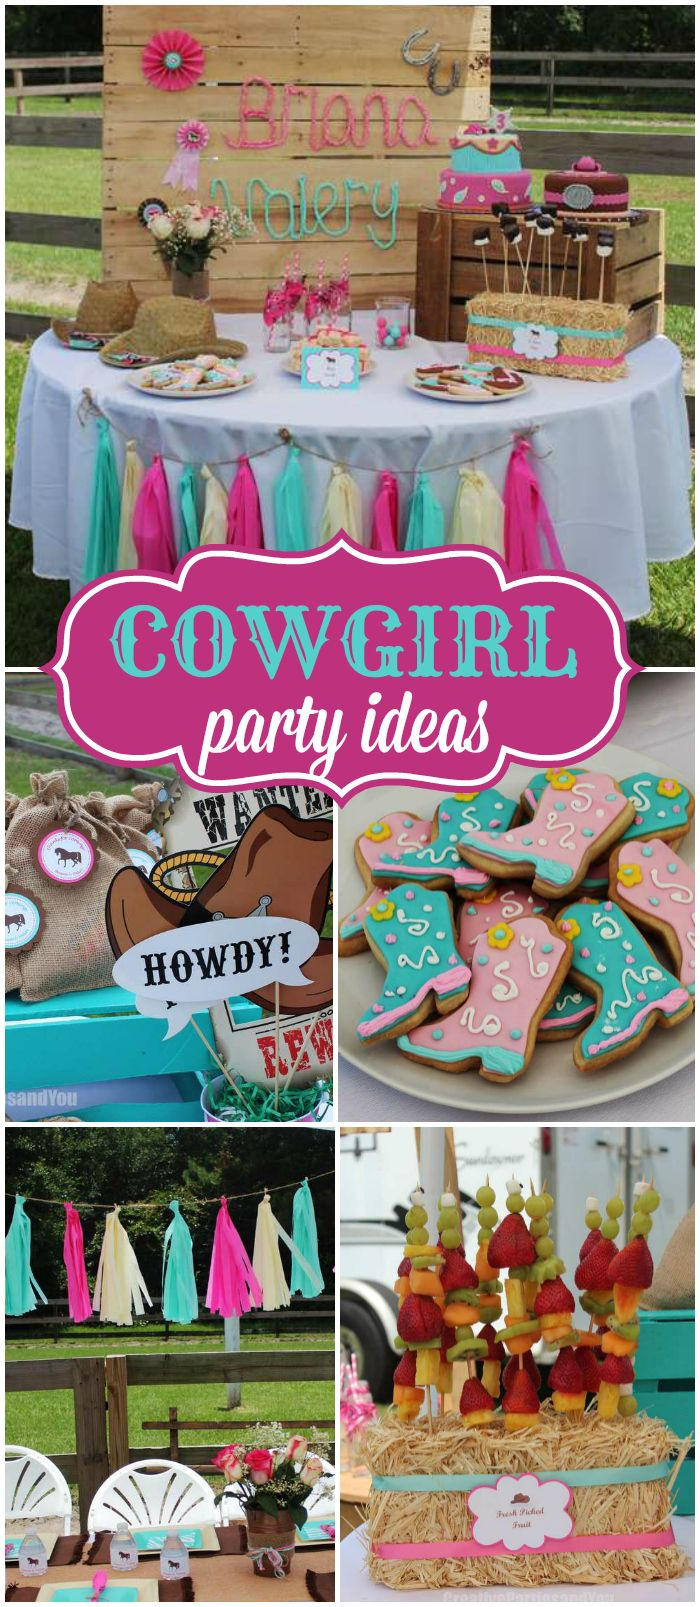 Grab Your Boots Saddle Up And Check Out This Cowgirl Party See More Ideas At CatchMyParty